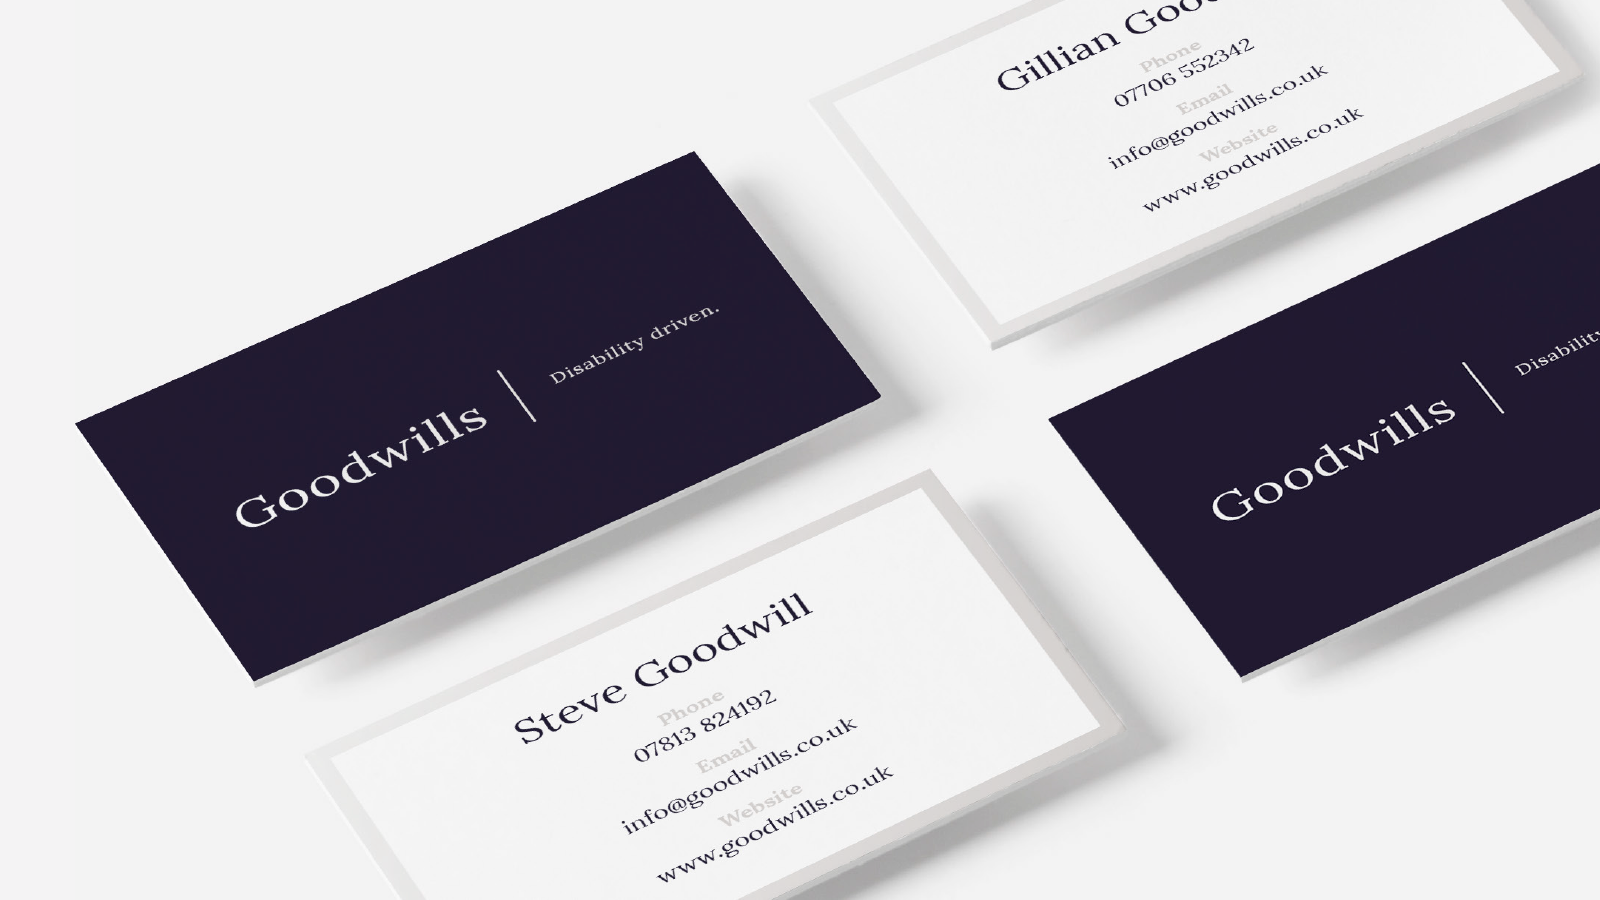 Goodwills Business Card Design